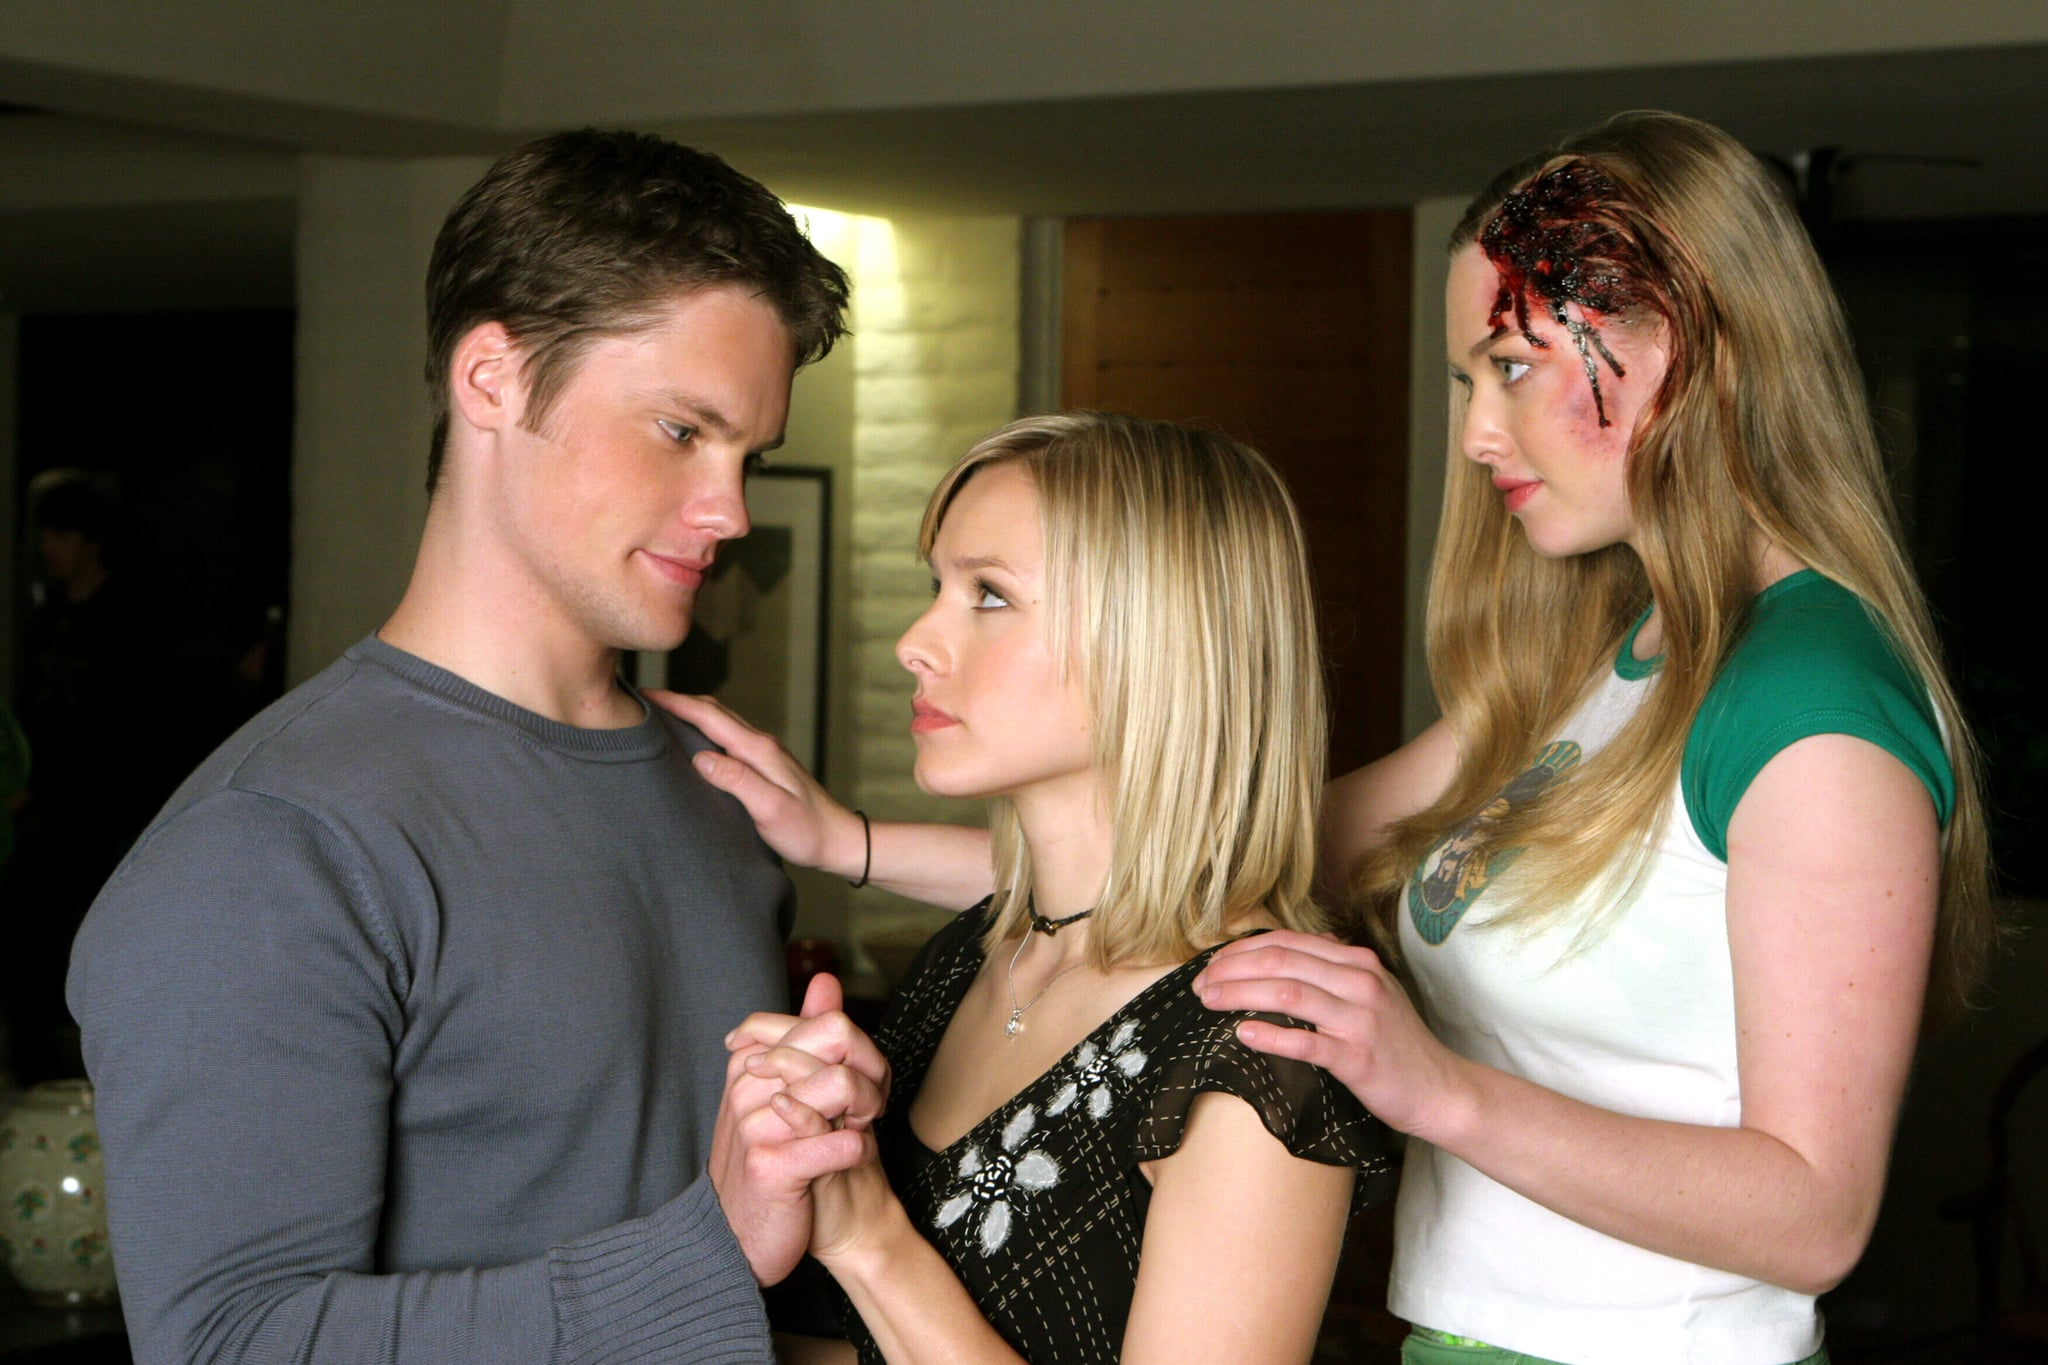 VERONICA MARS, Teddy Dunn, Kristen Bell, Amanda Seyfried, (Season 1), 2004-07. photo:  Warner Bros. Television / Courtesy Everett Collection